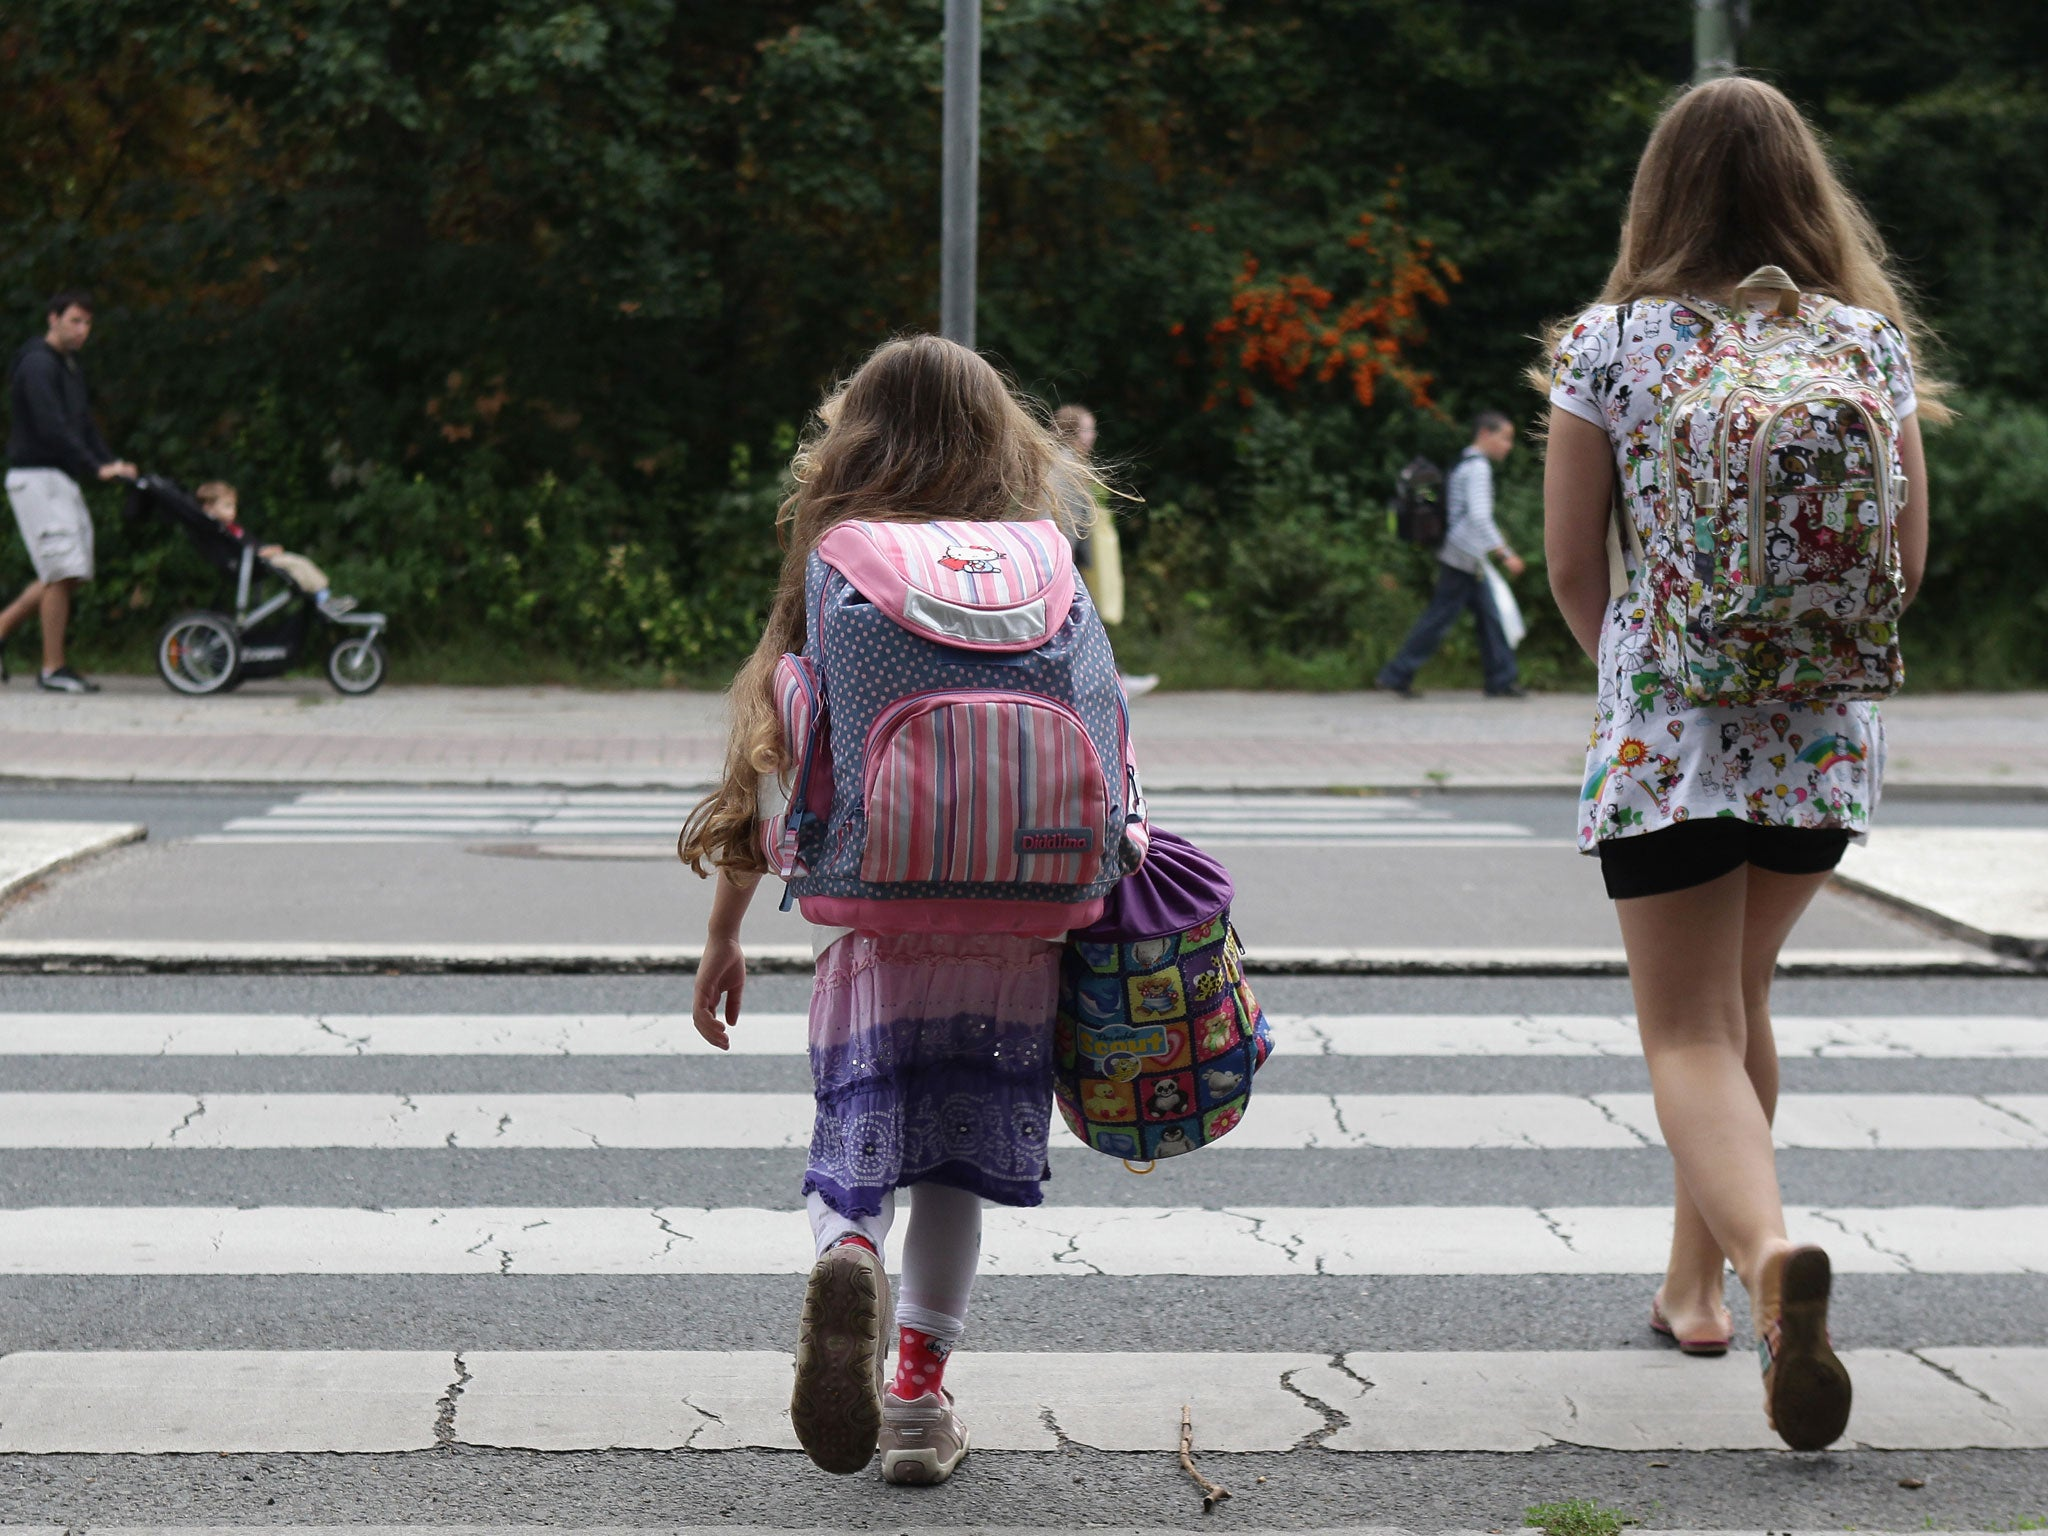 Only 25 per cent of children walk to school alone compared ...